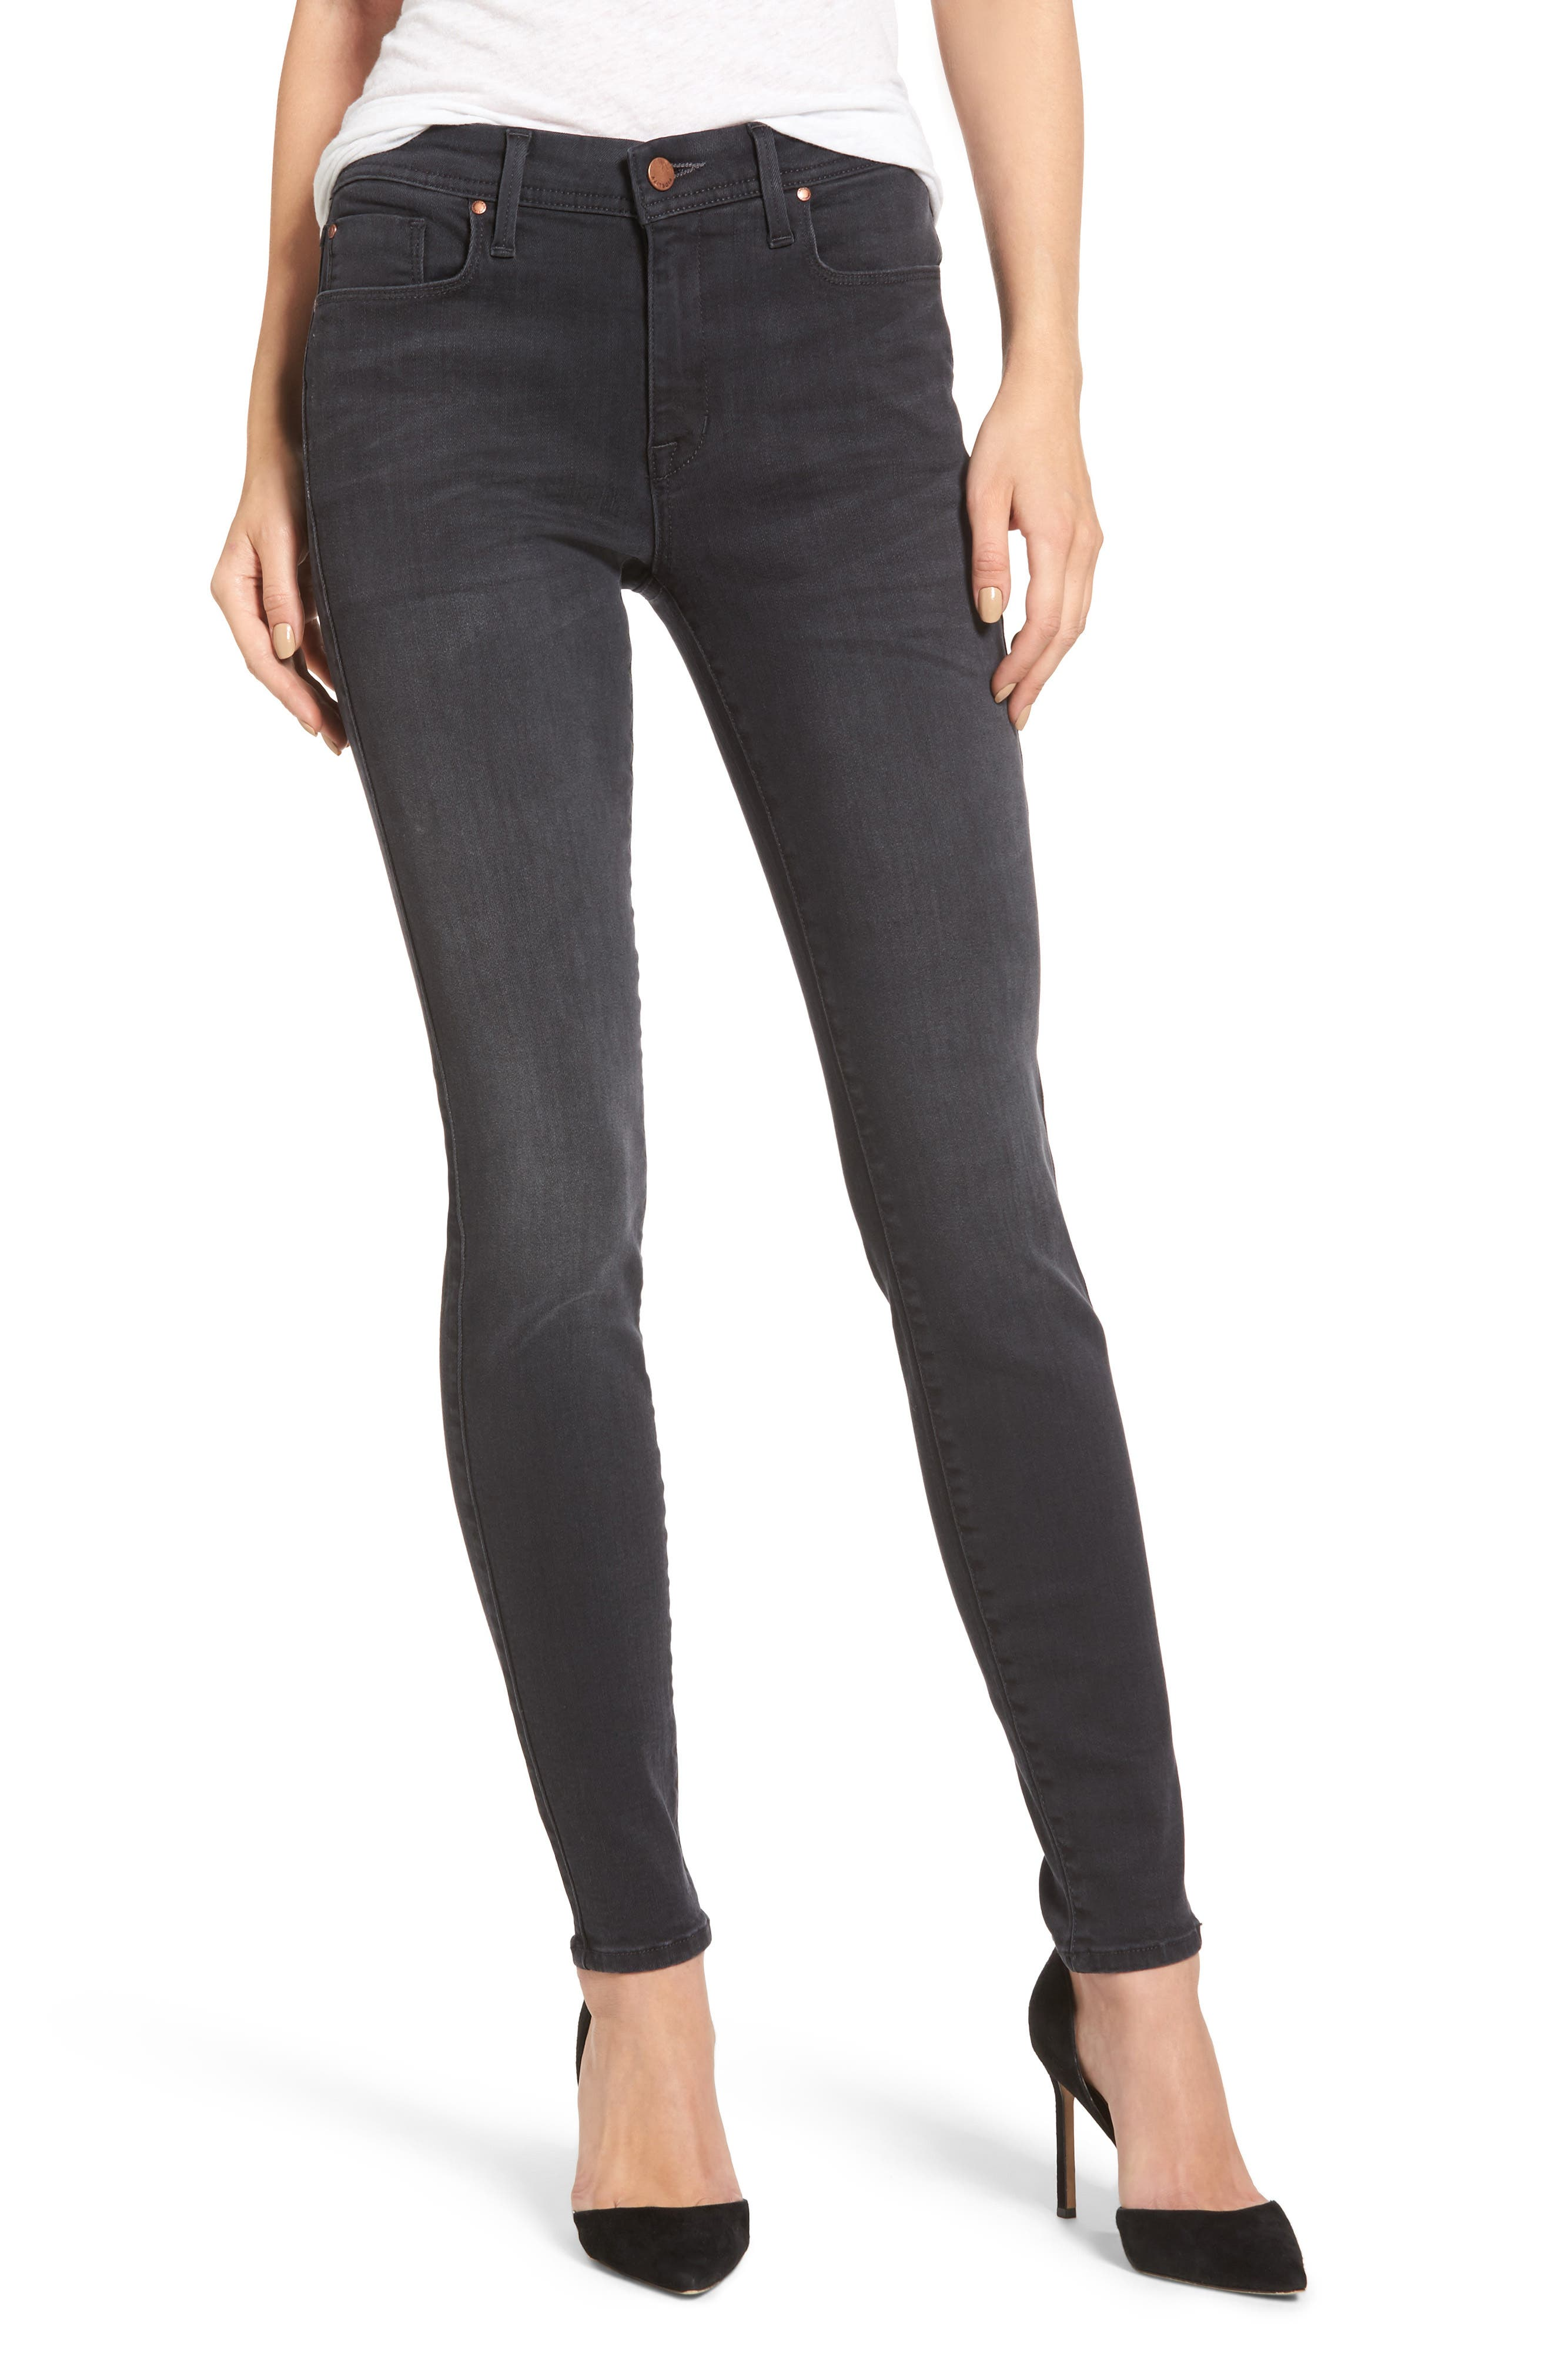 Belvedere Skinny Jeans,                             Main thumbnail 1, color,                             Wolverine